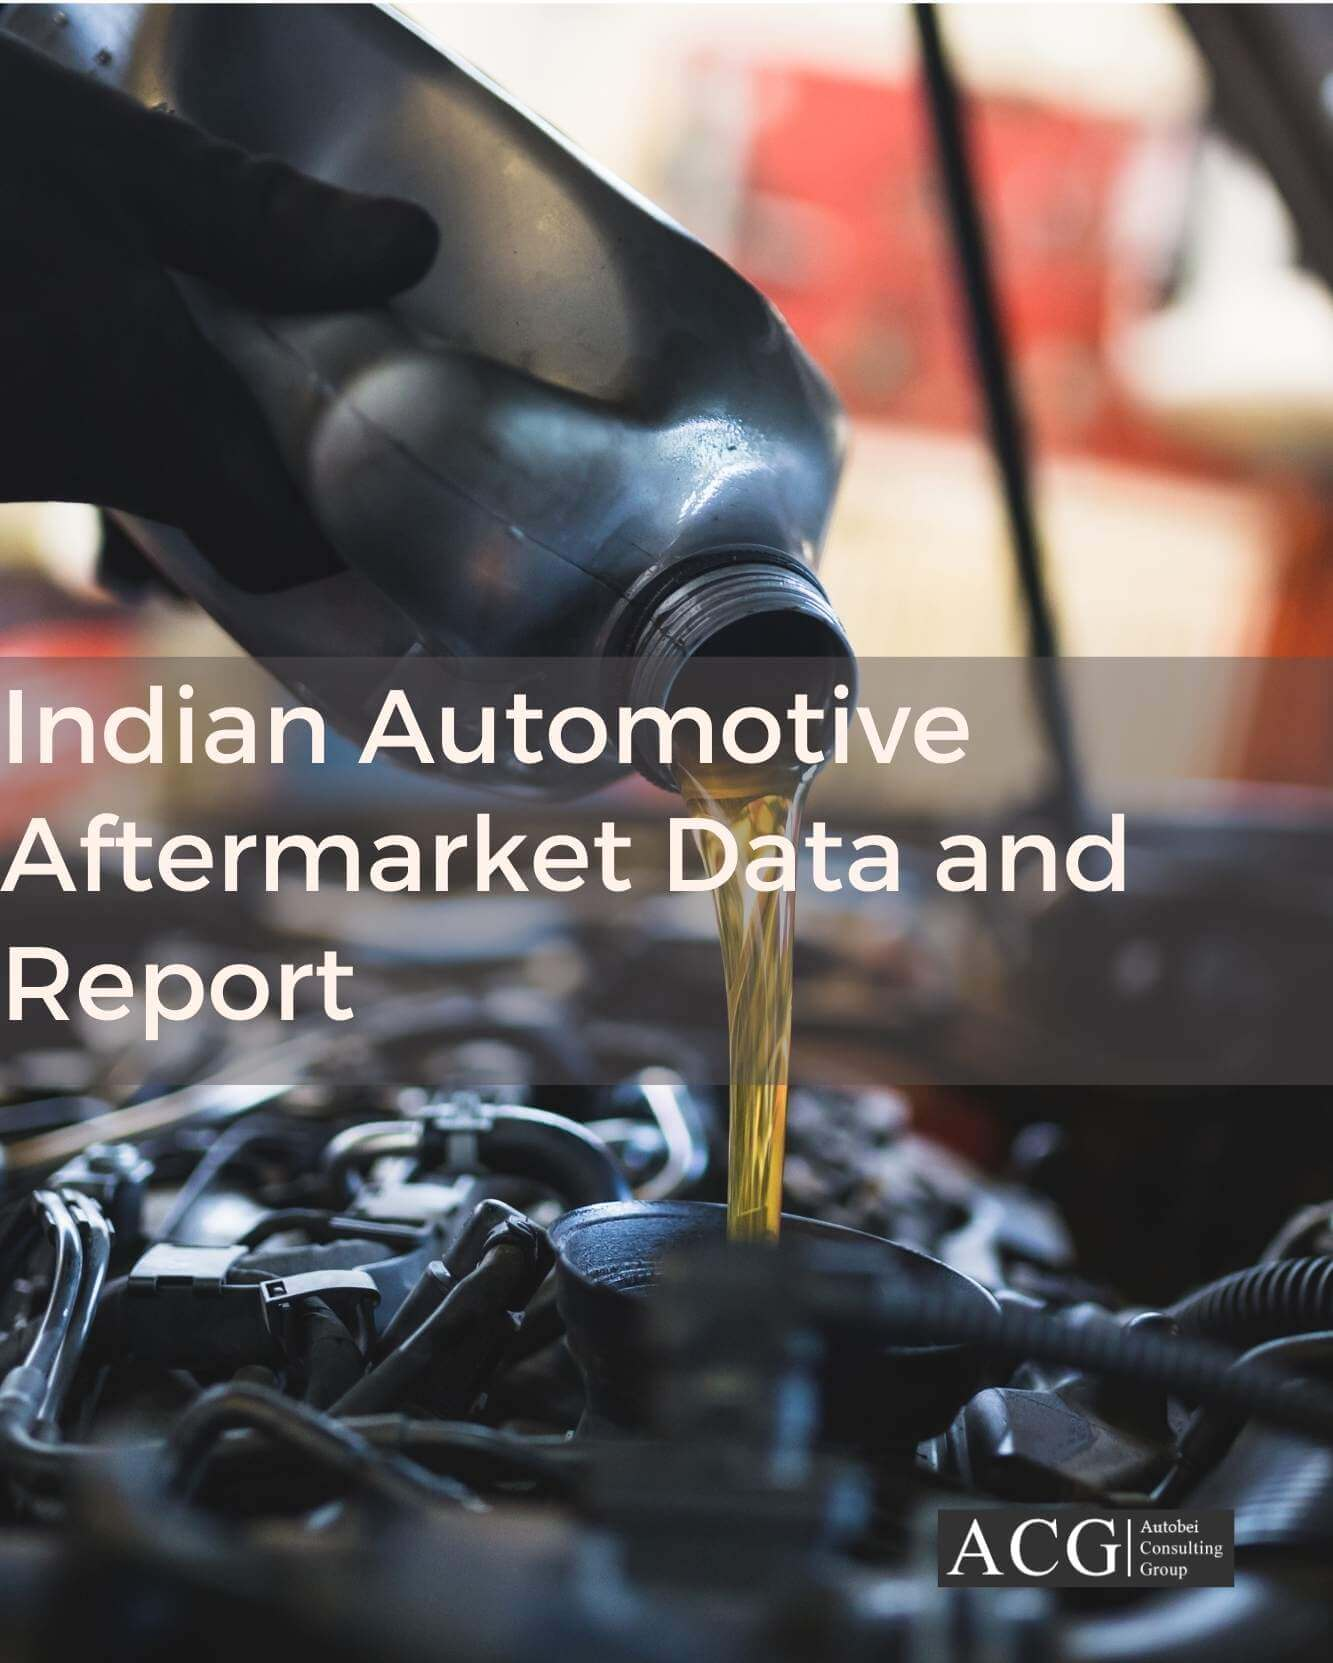 Automotive Aftermarket Data and Report